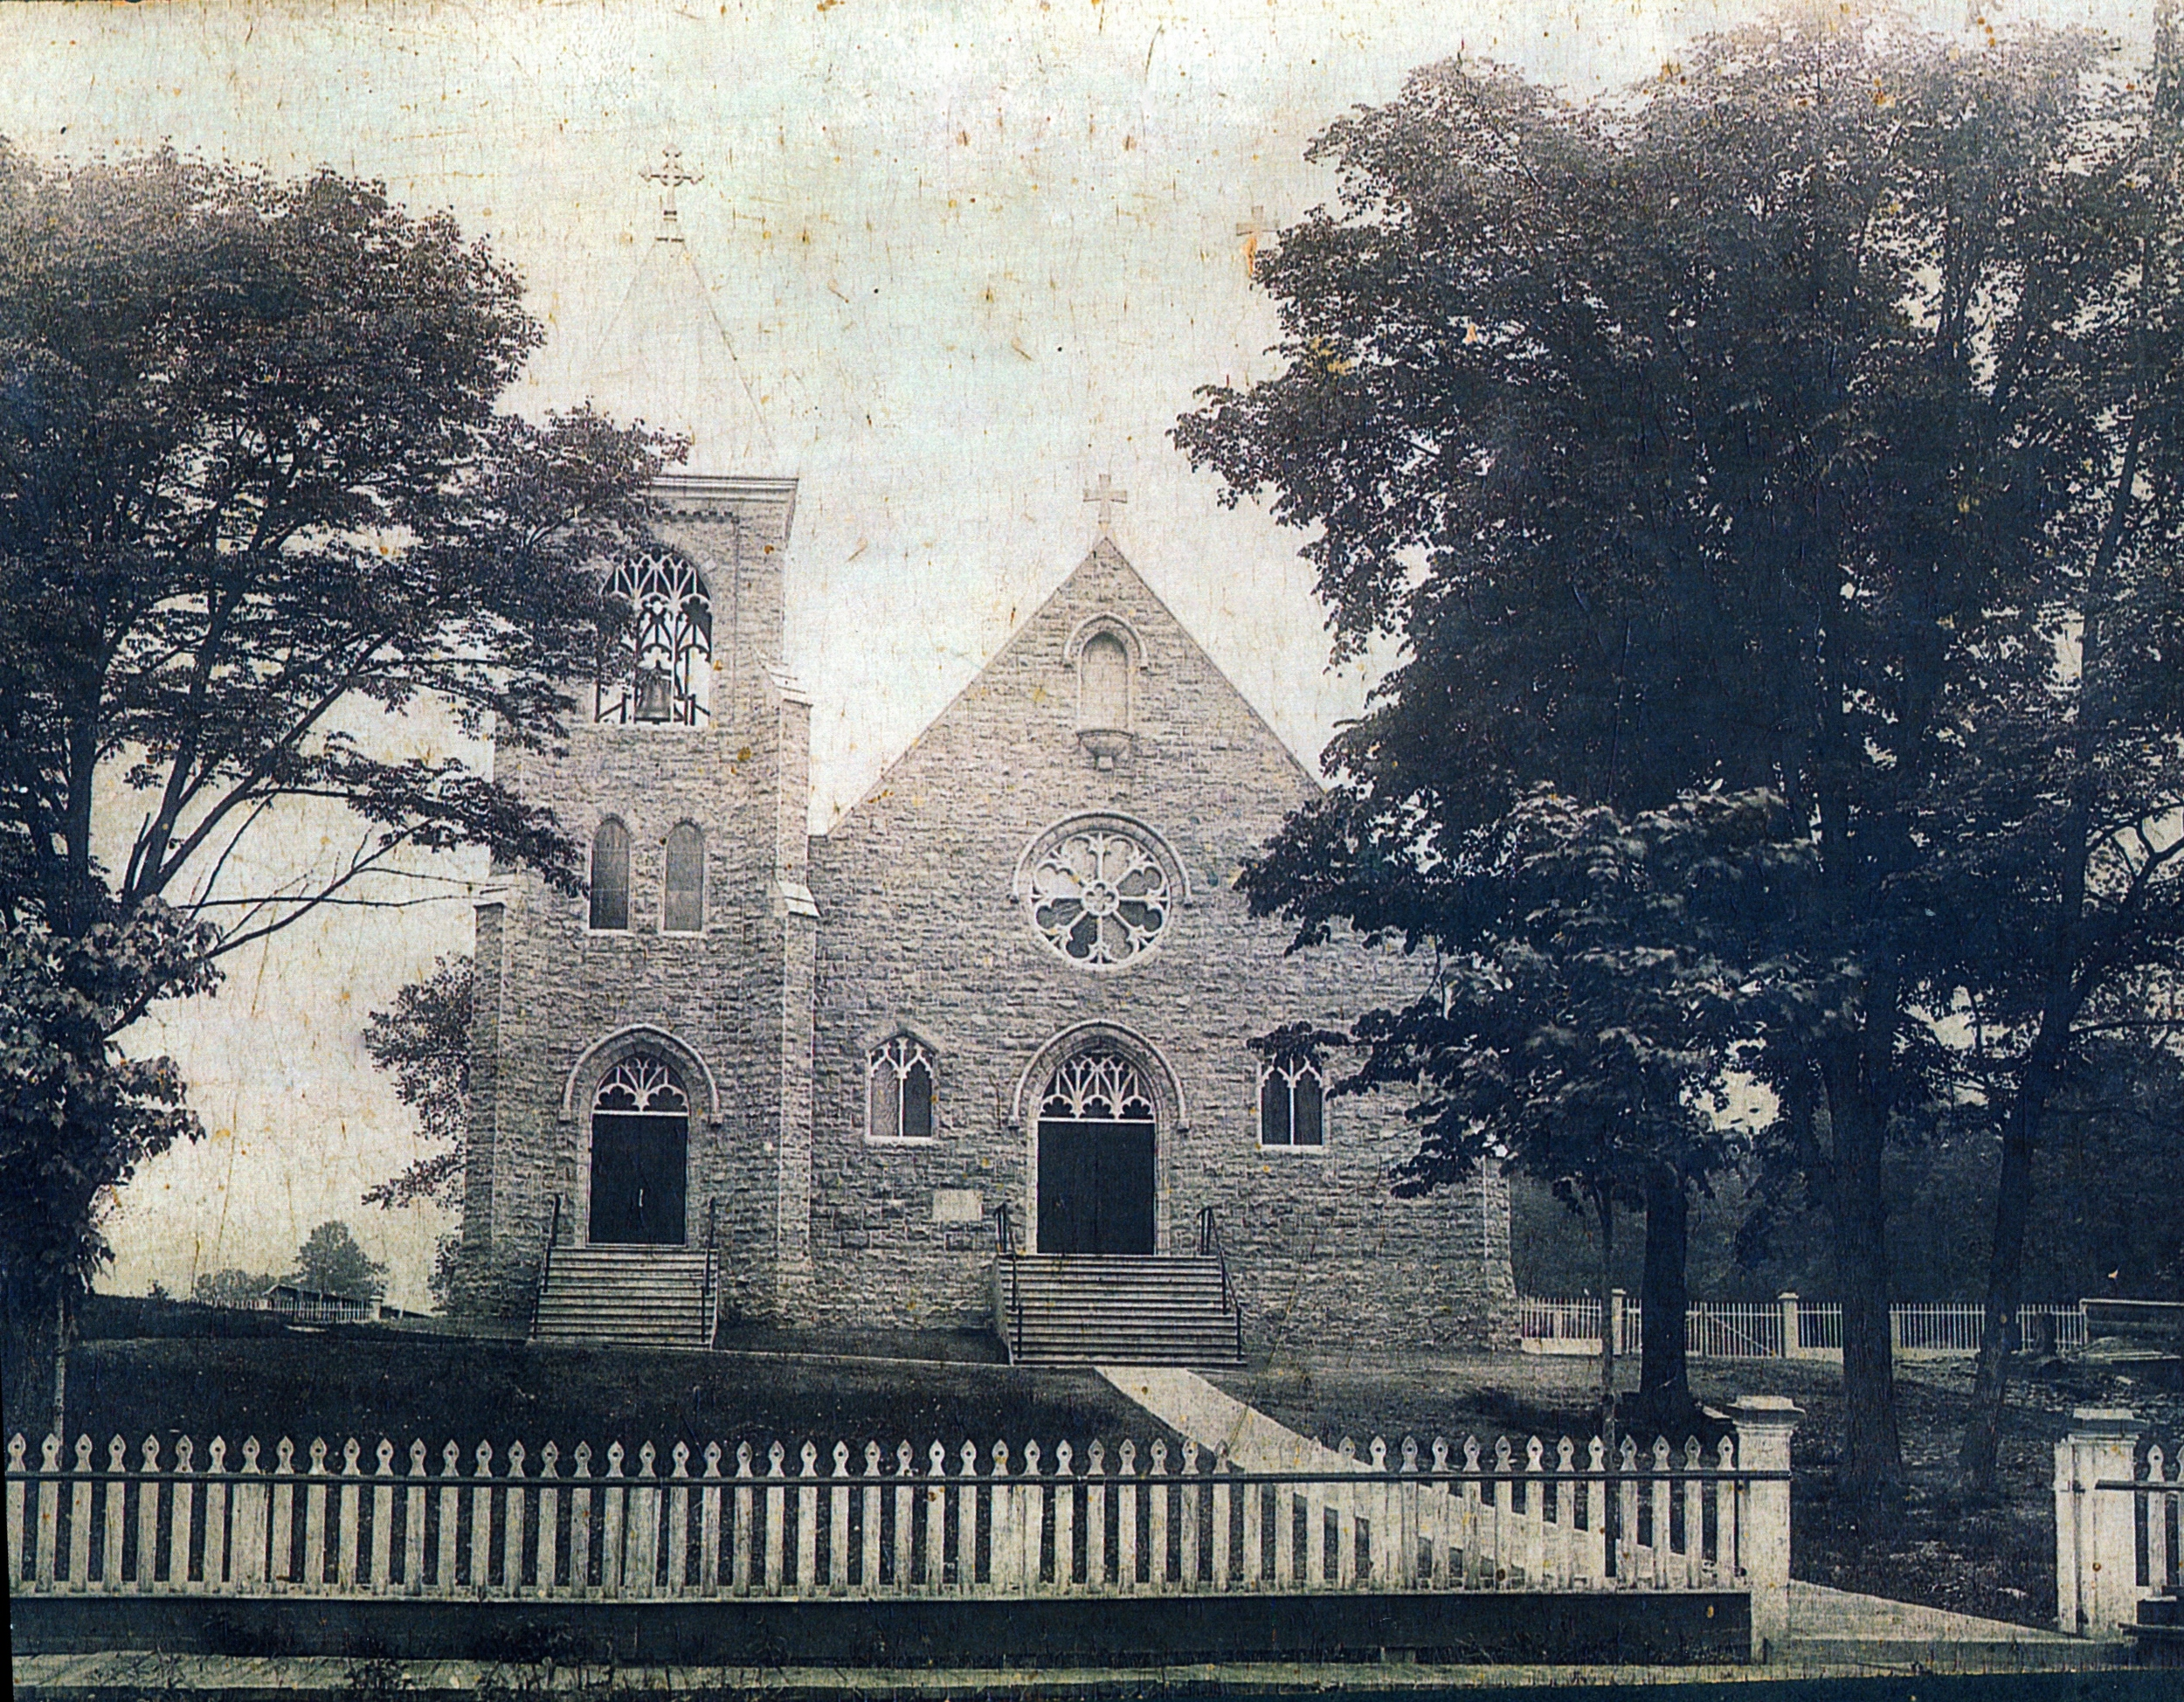 1912 before the school was built